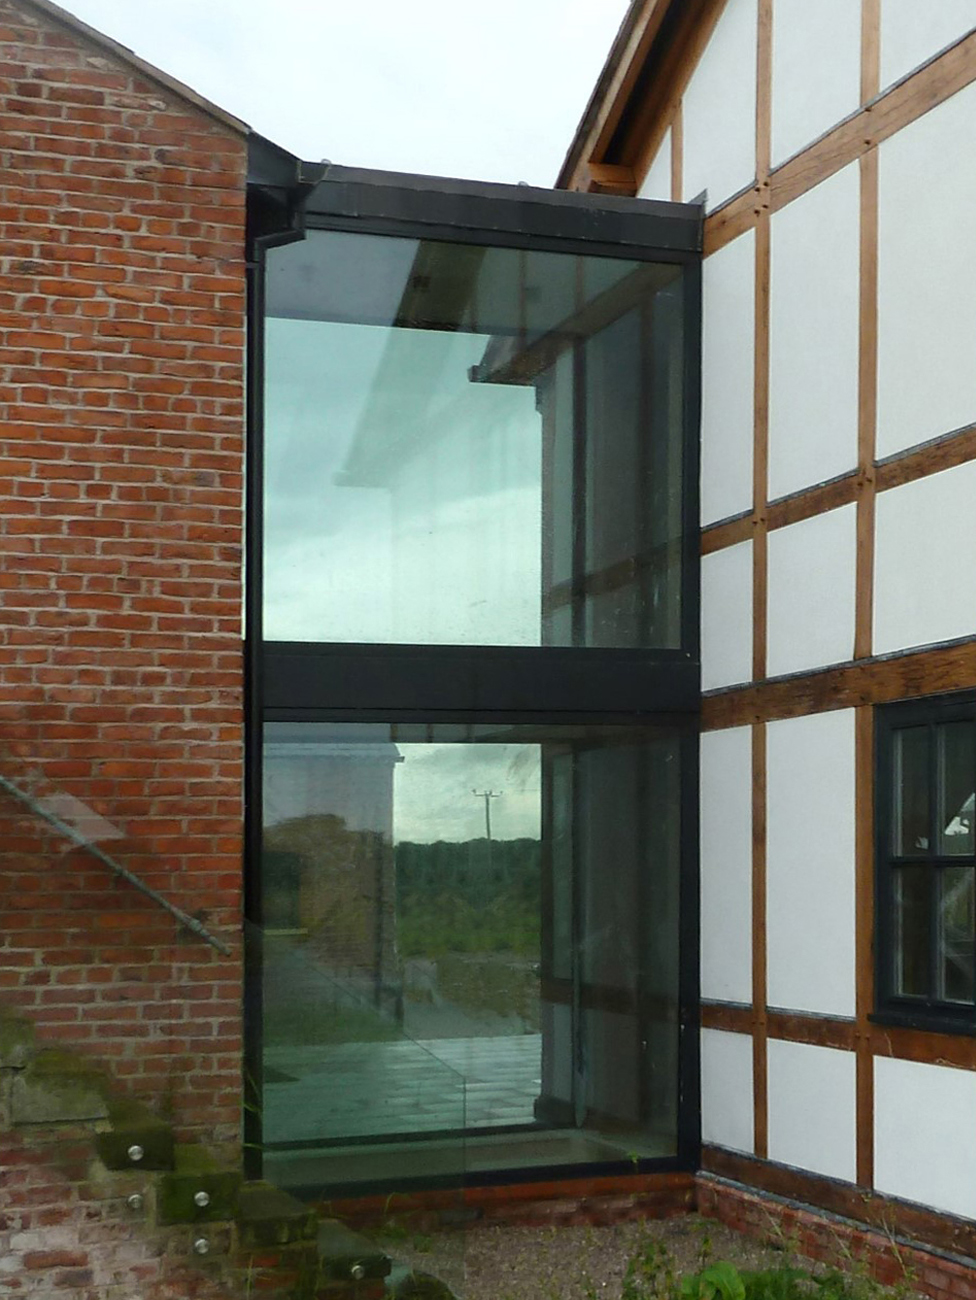 Glazing can be used to link into existing brick or stone buildings